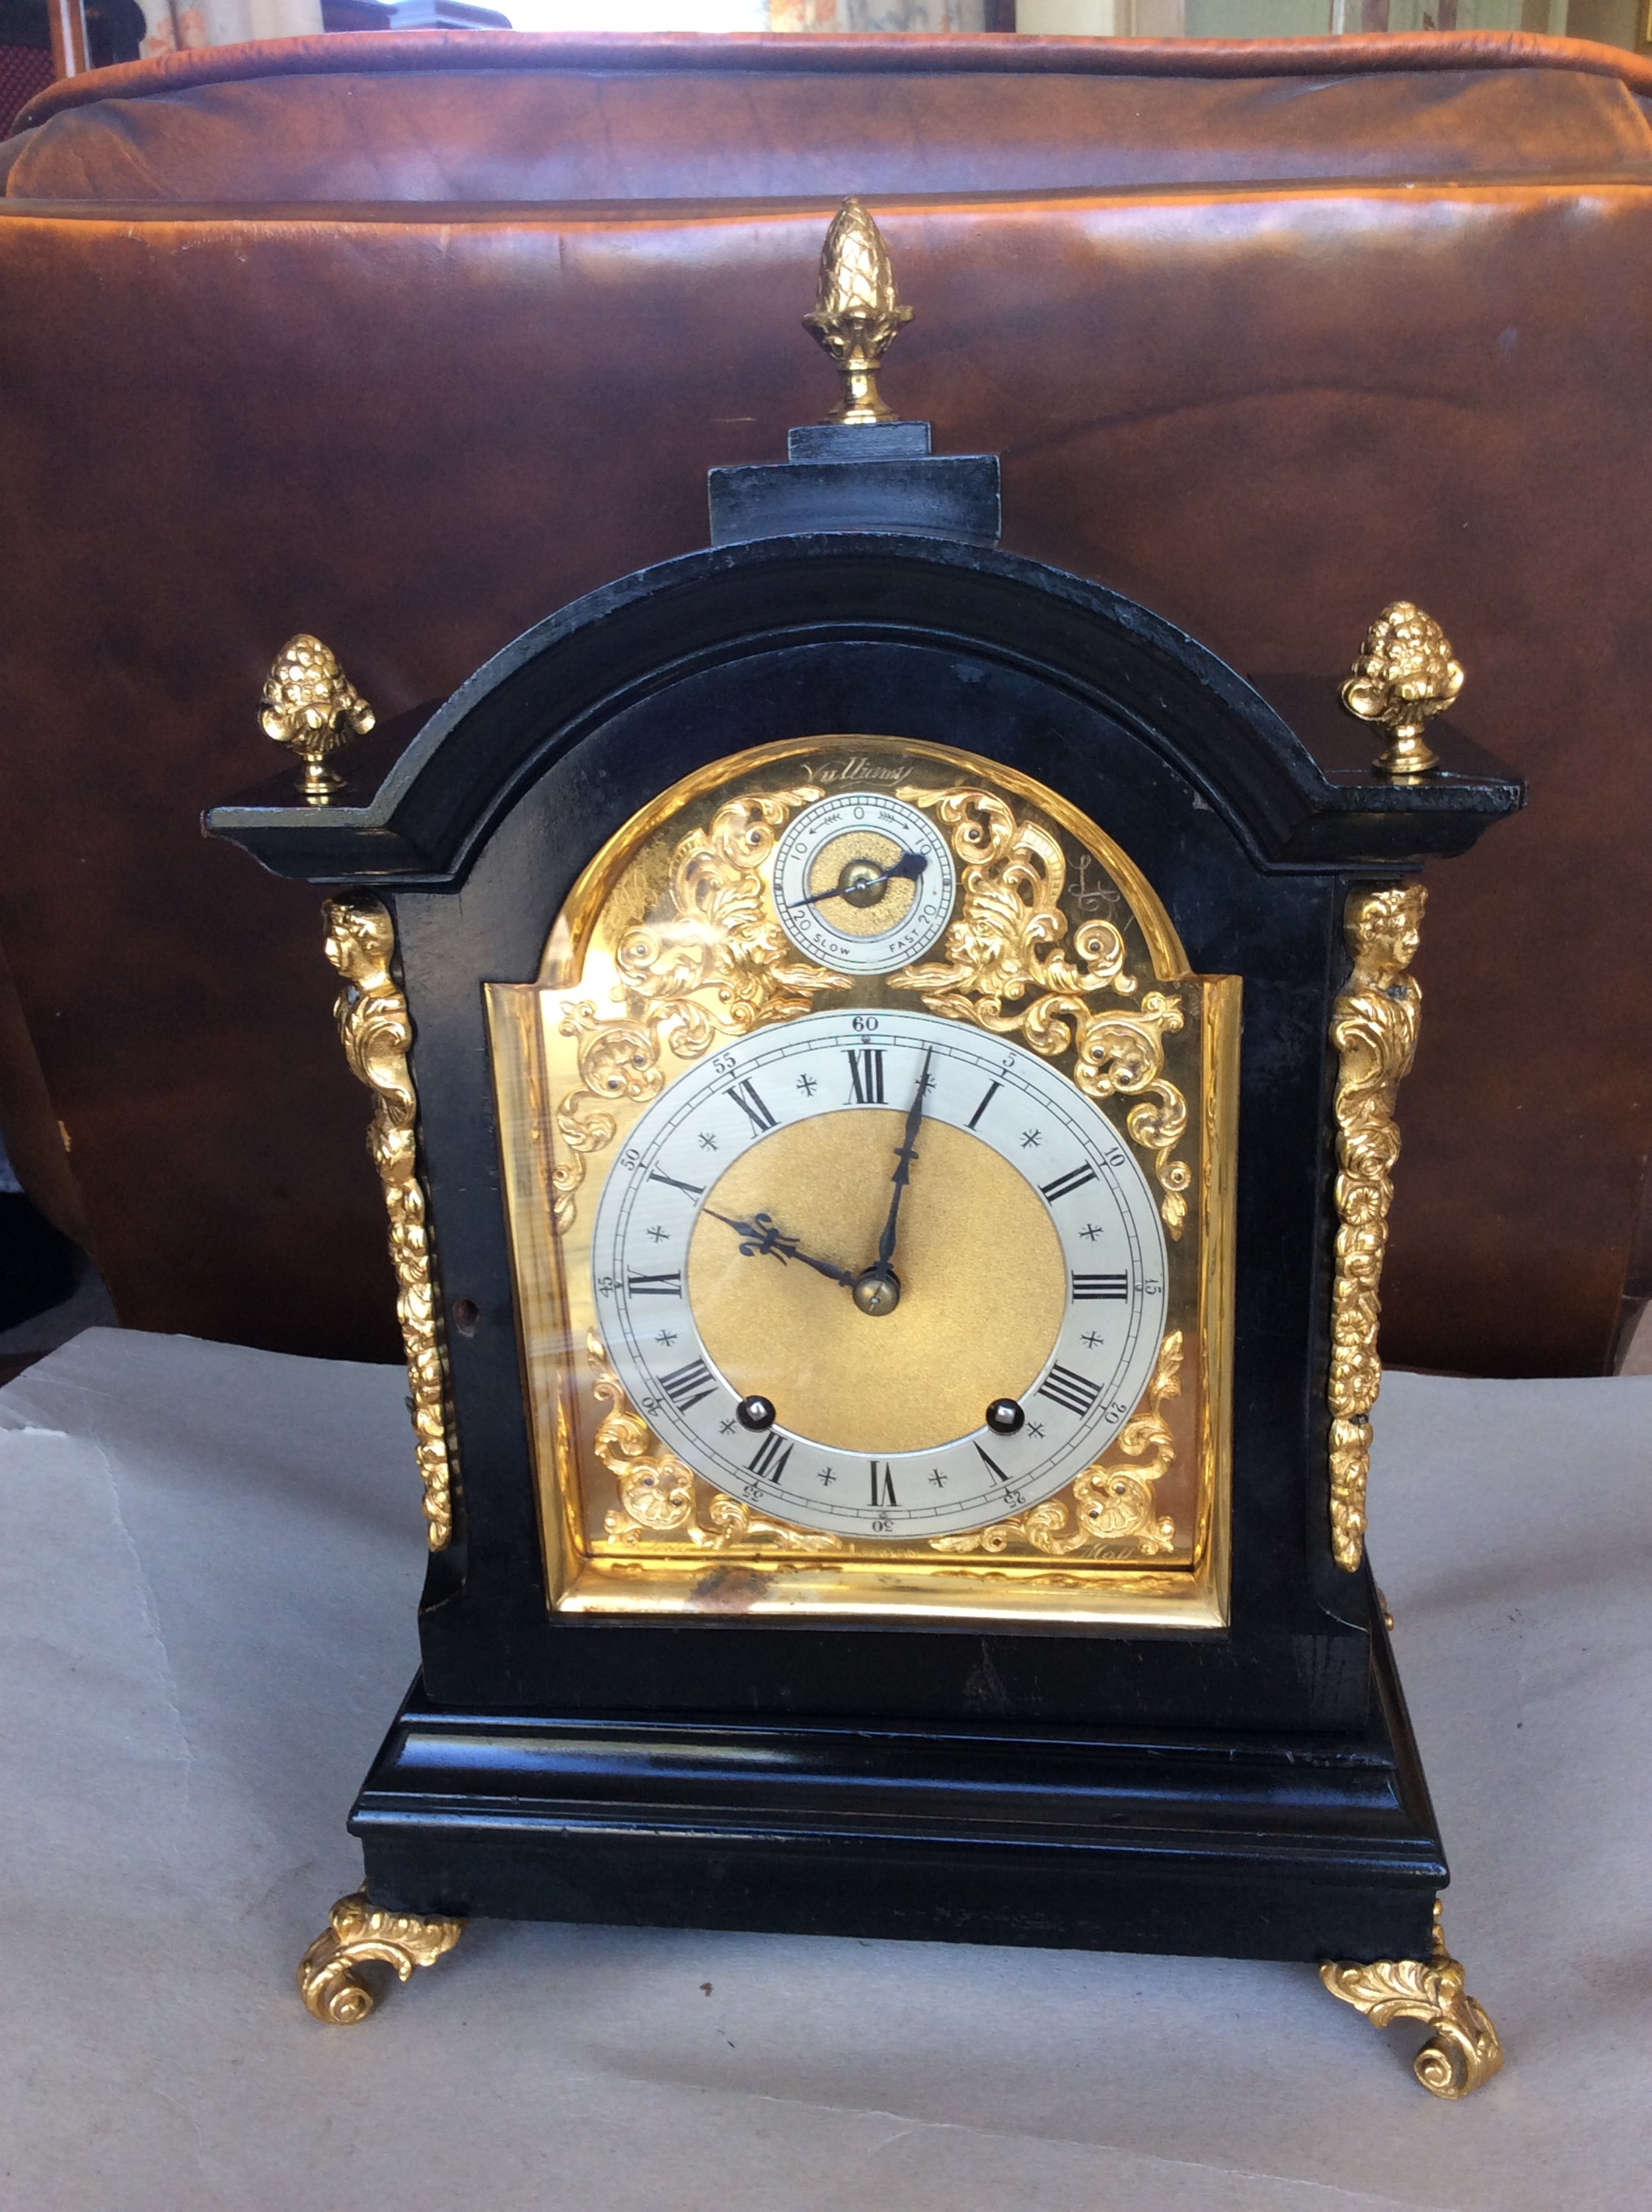 quarter striking 19th c bracketmantelmantle clock vulliamy who were suppliers to the crown